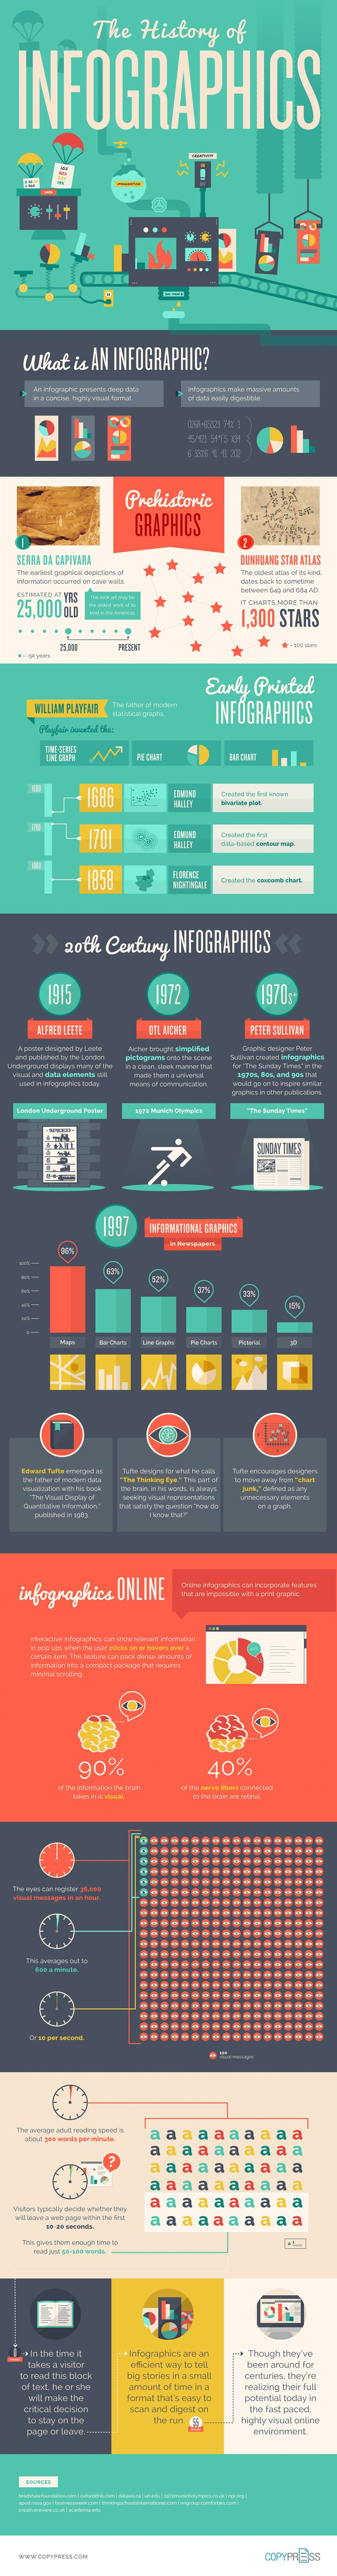 The Beautiful History of Infographics [Infographic]